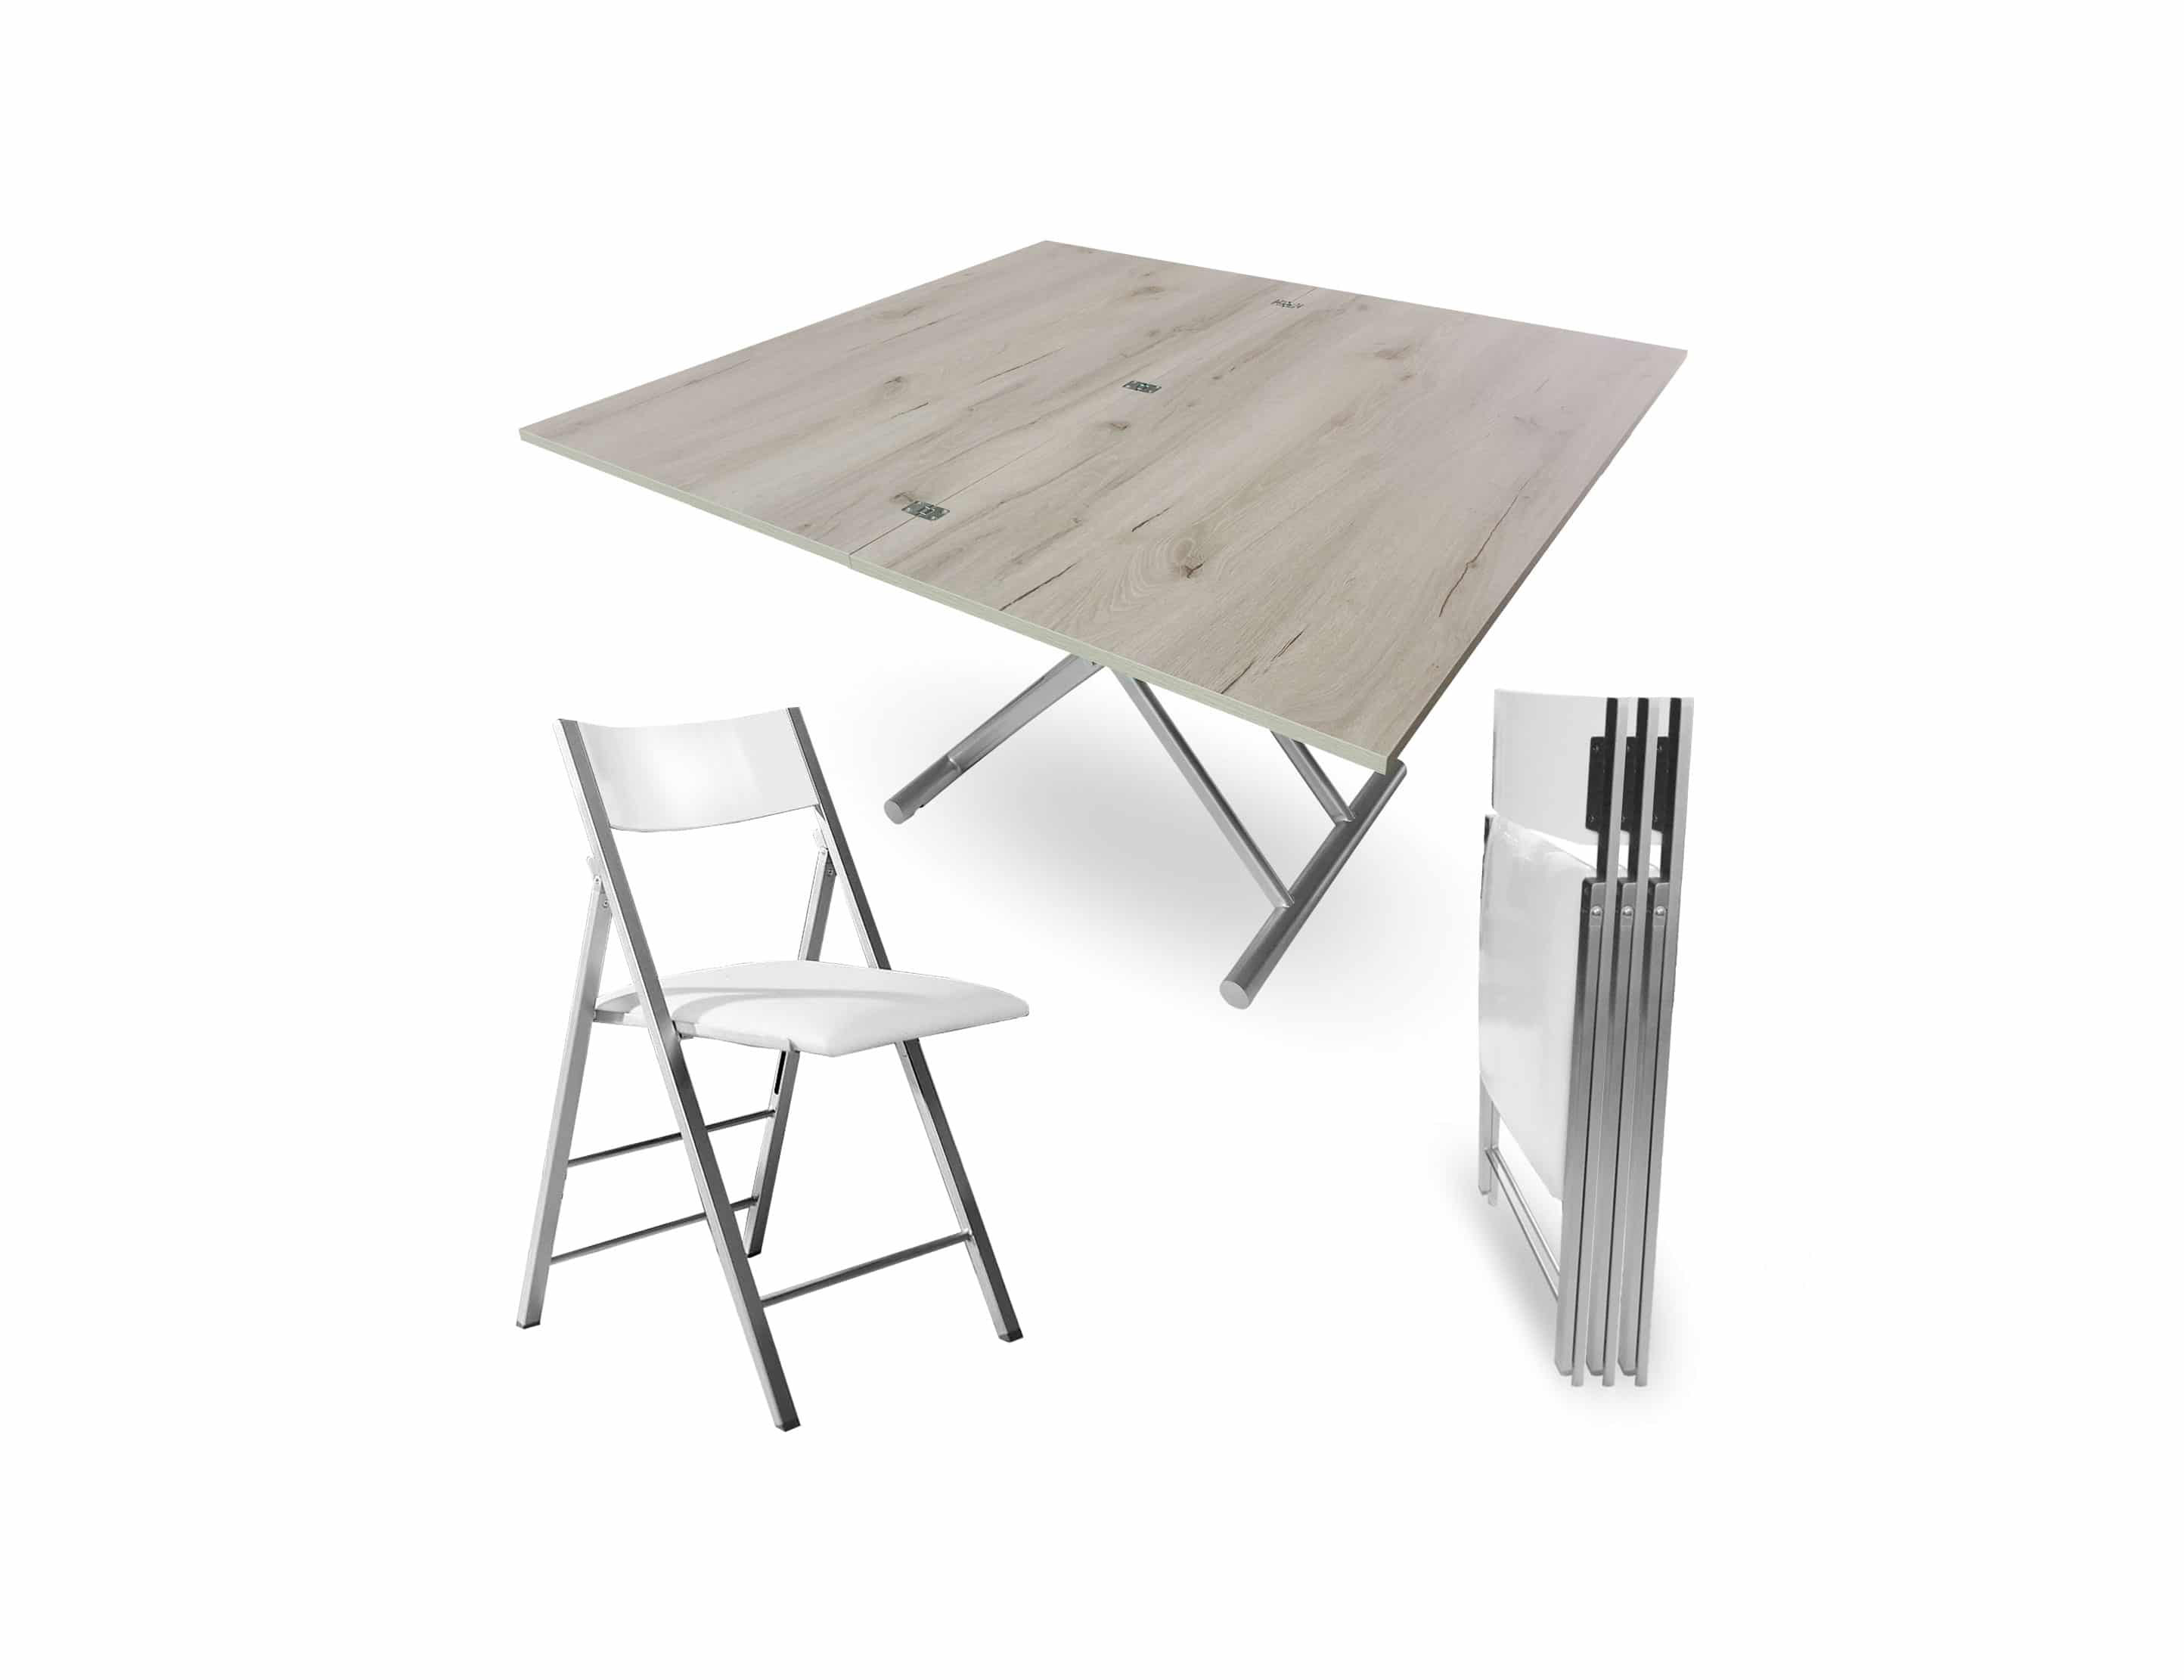 The Alzare Raising Coffee Dining Table Set Expand Furniture Folding Tables Smarter Wall Beds Space Savers